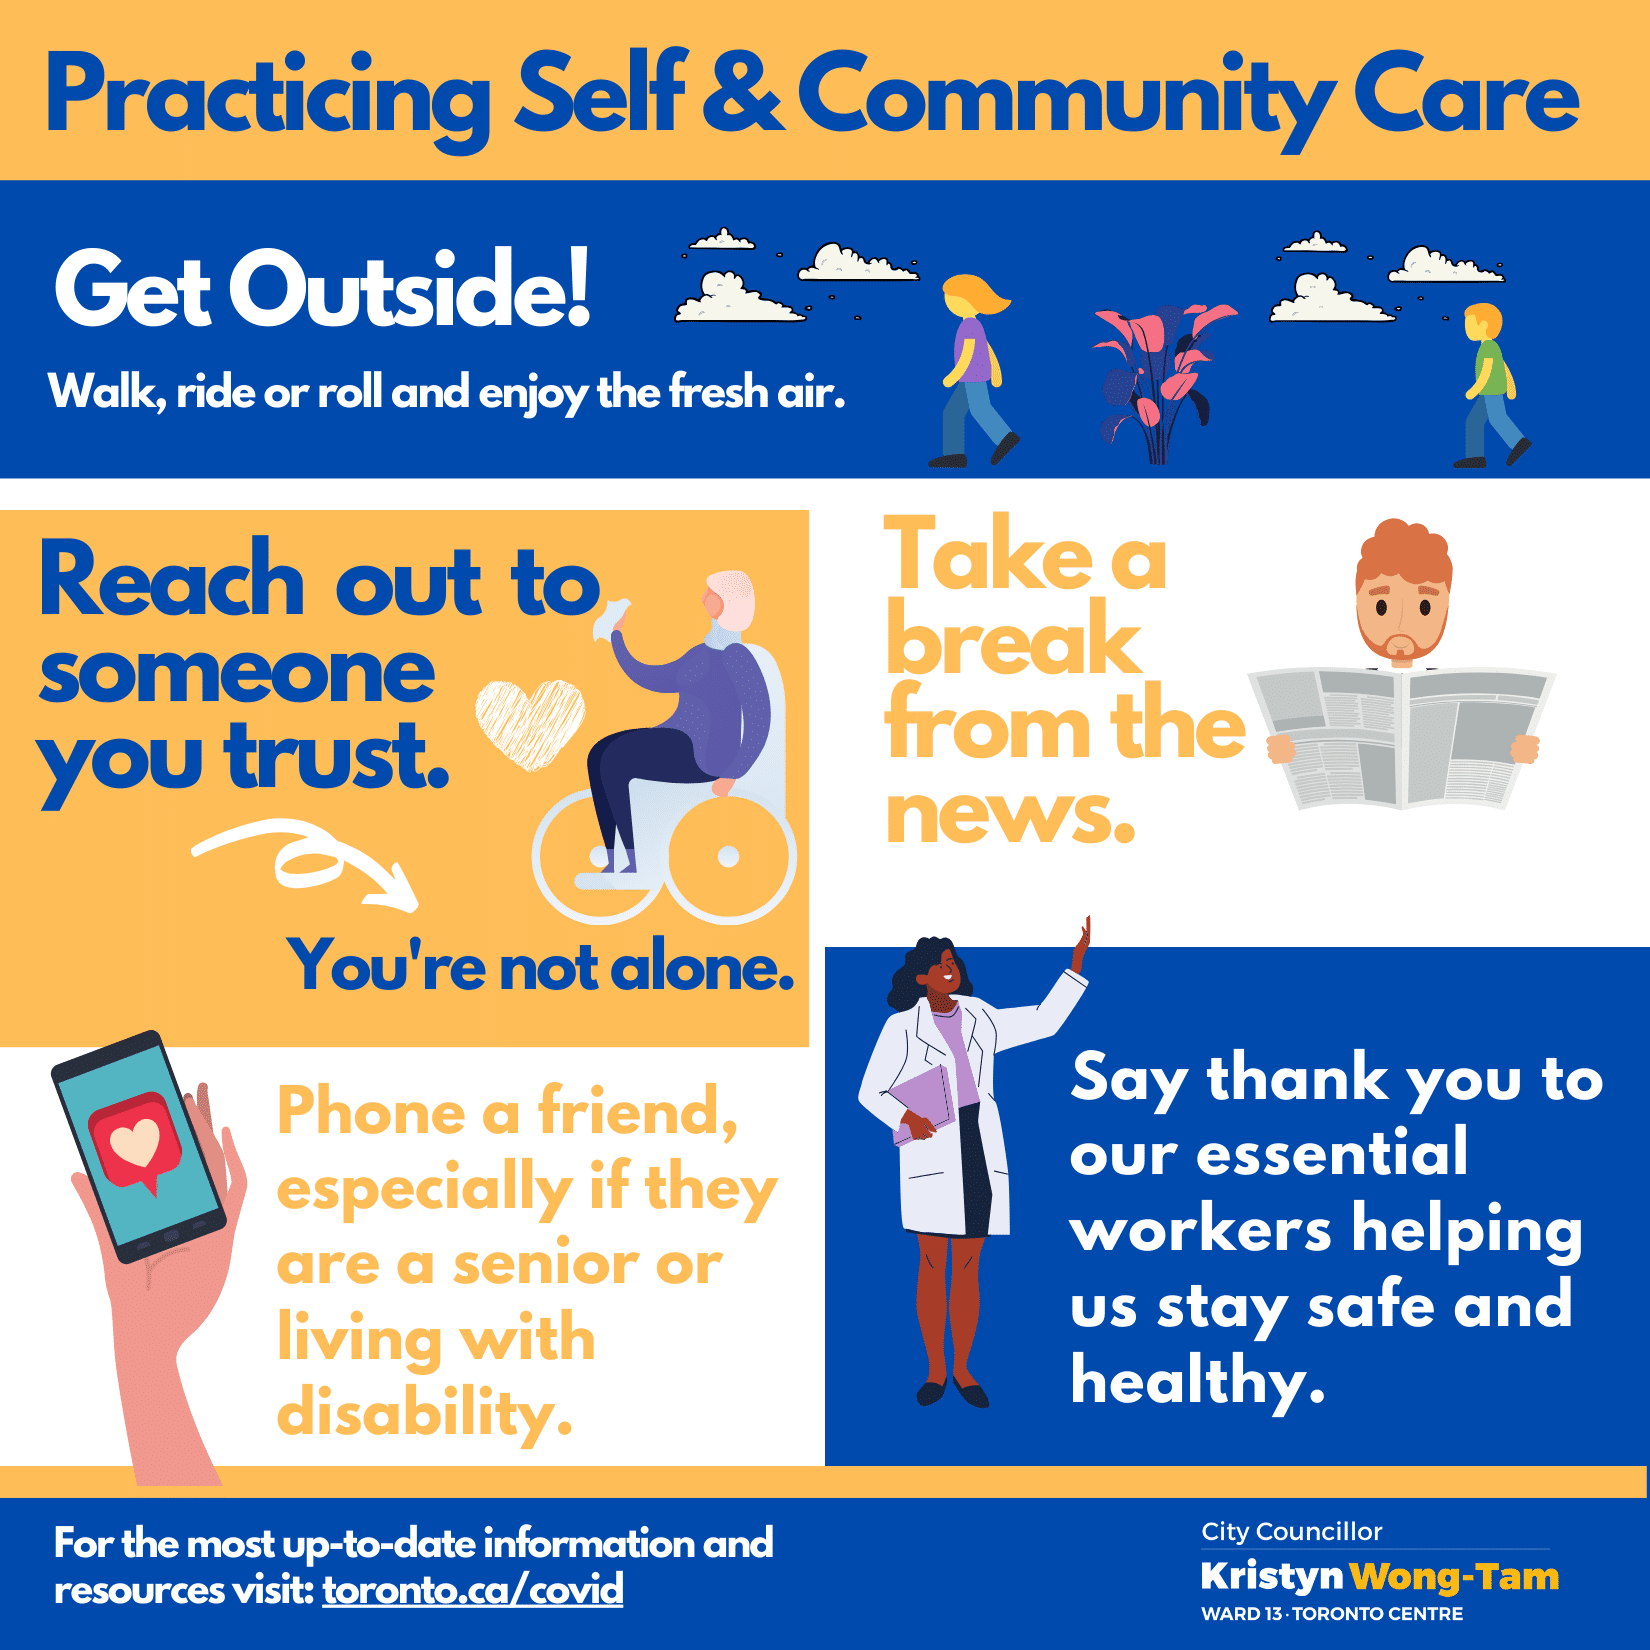 Community and Self Care